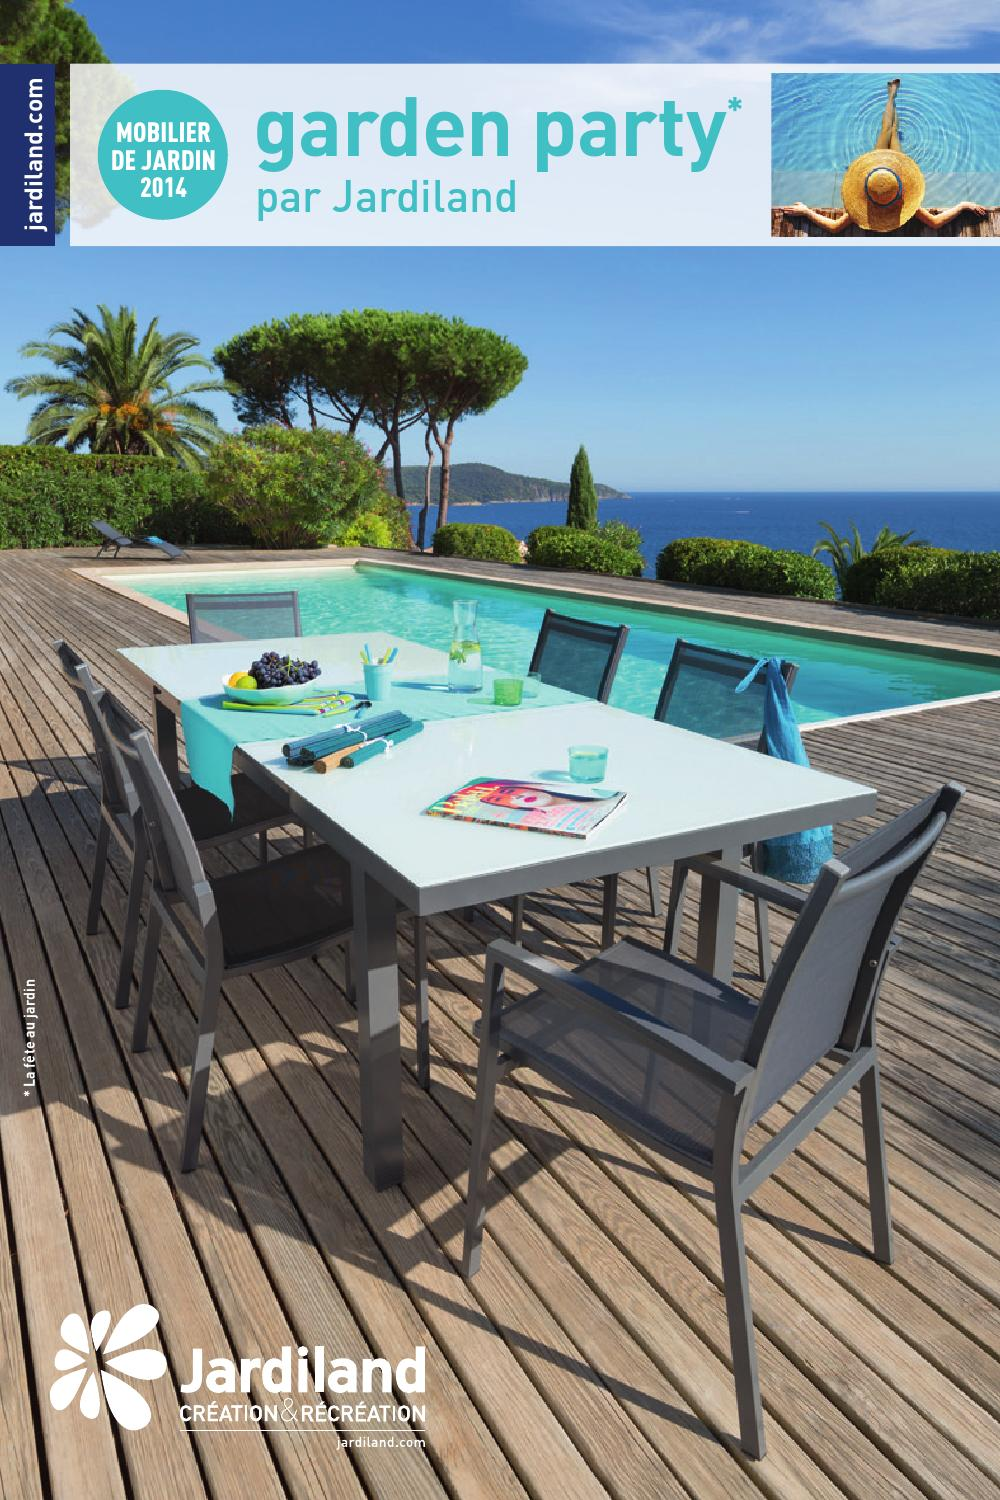 Petite Table De Jardin Jardiland Catalogue Jardiland Mobilier De Jardin 2014 By Joe Monroe Issuu